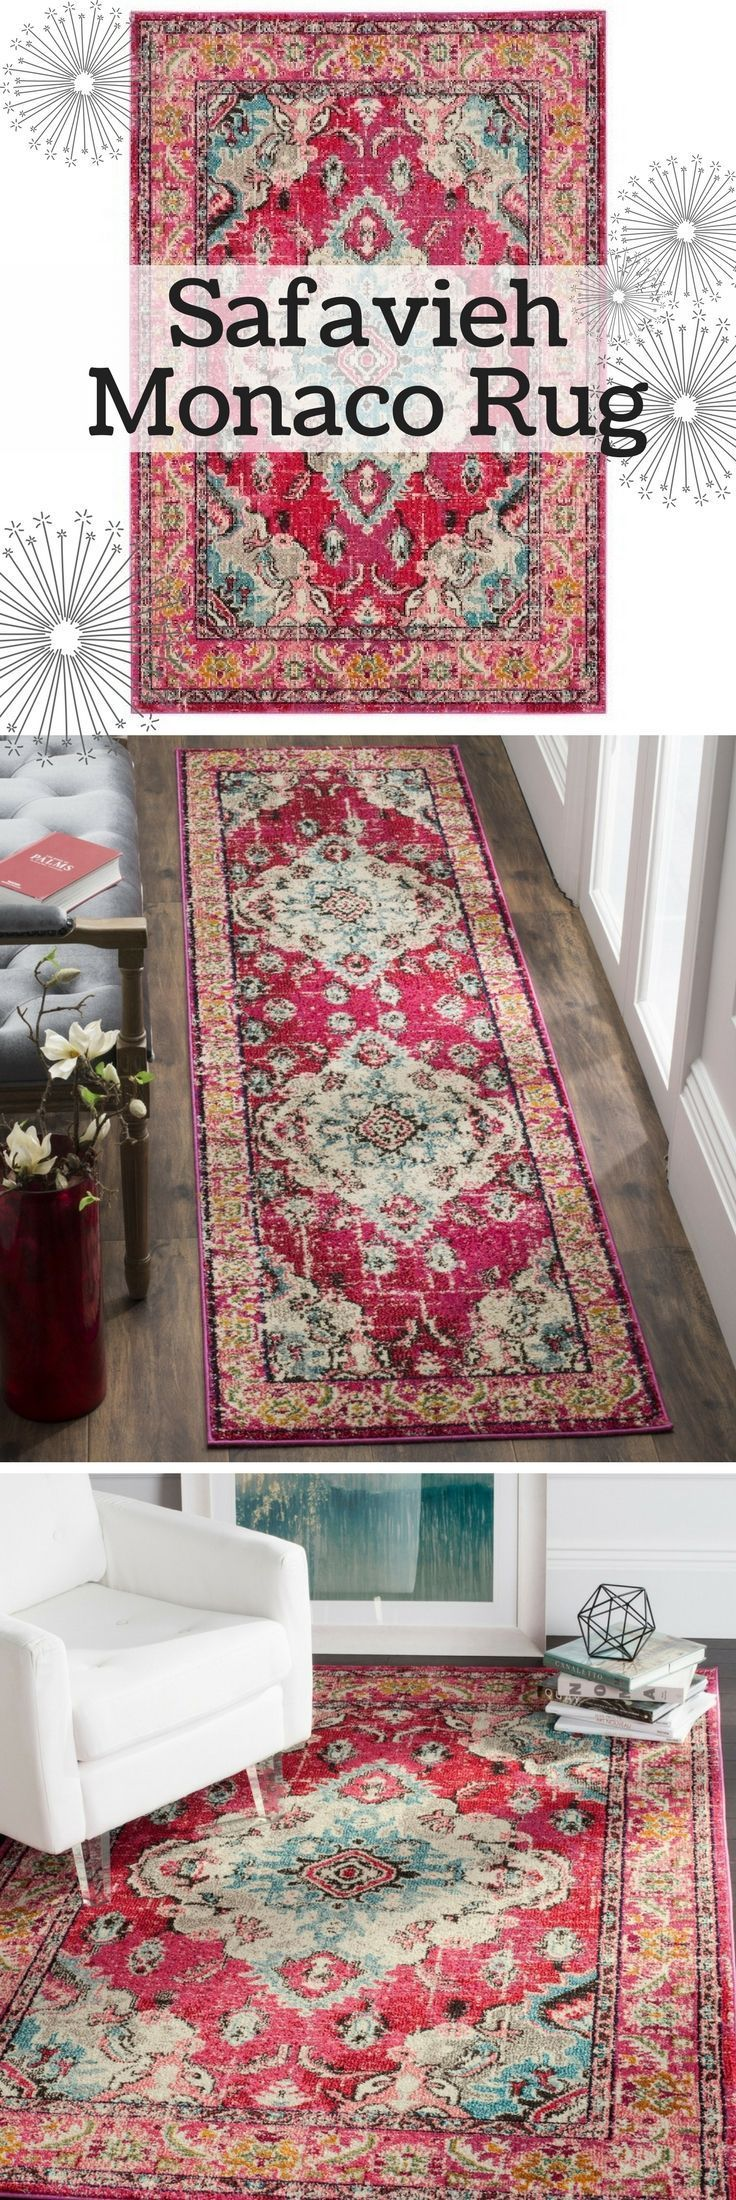 persian rug pink rug boho chic bohemian area rug modern classic transitional h on boho chic kitchen rugs id=52567